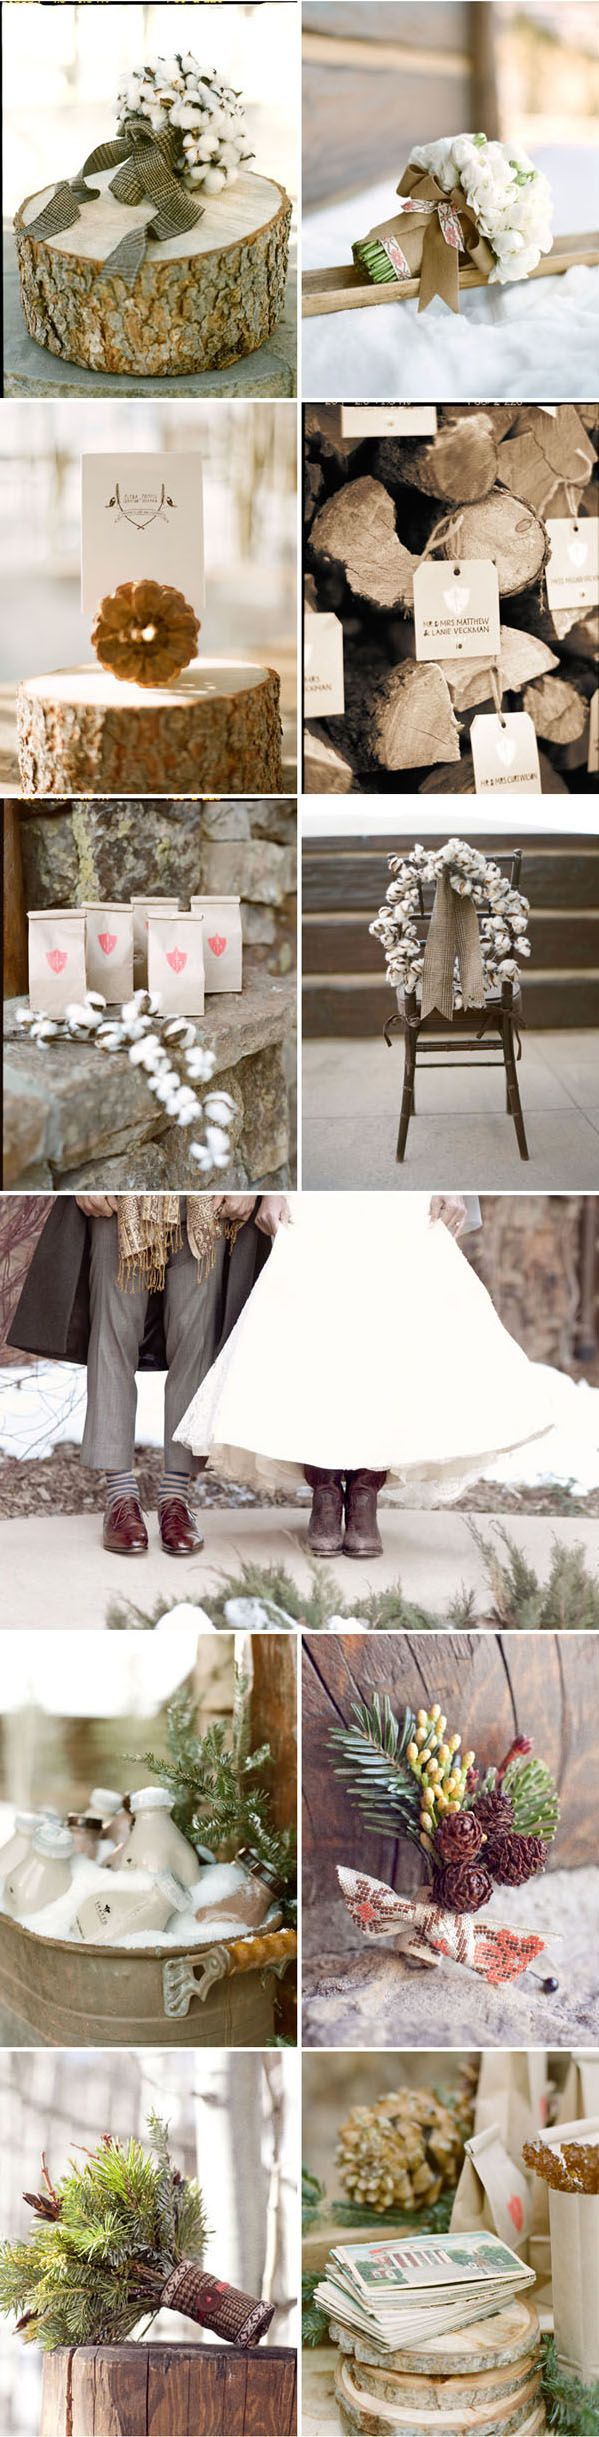 Inspiration for a Rustic Winter Wedding